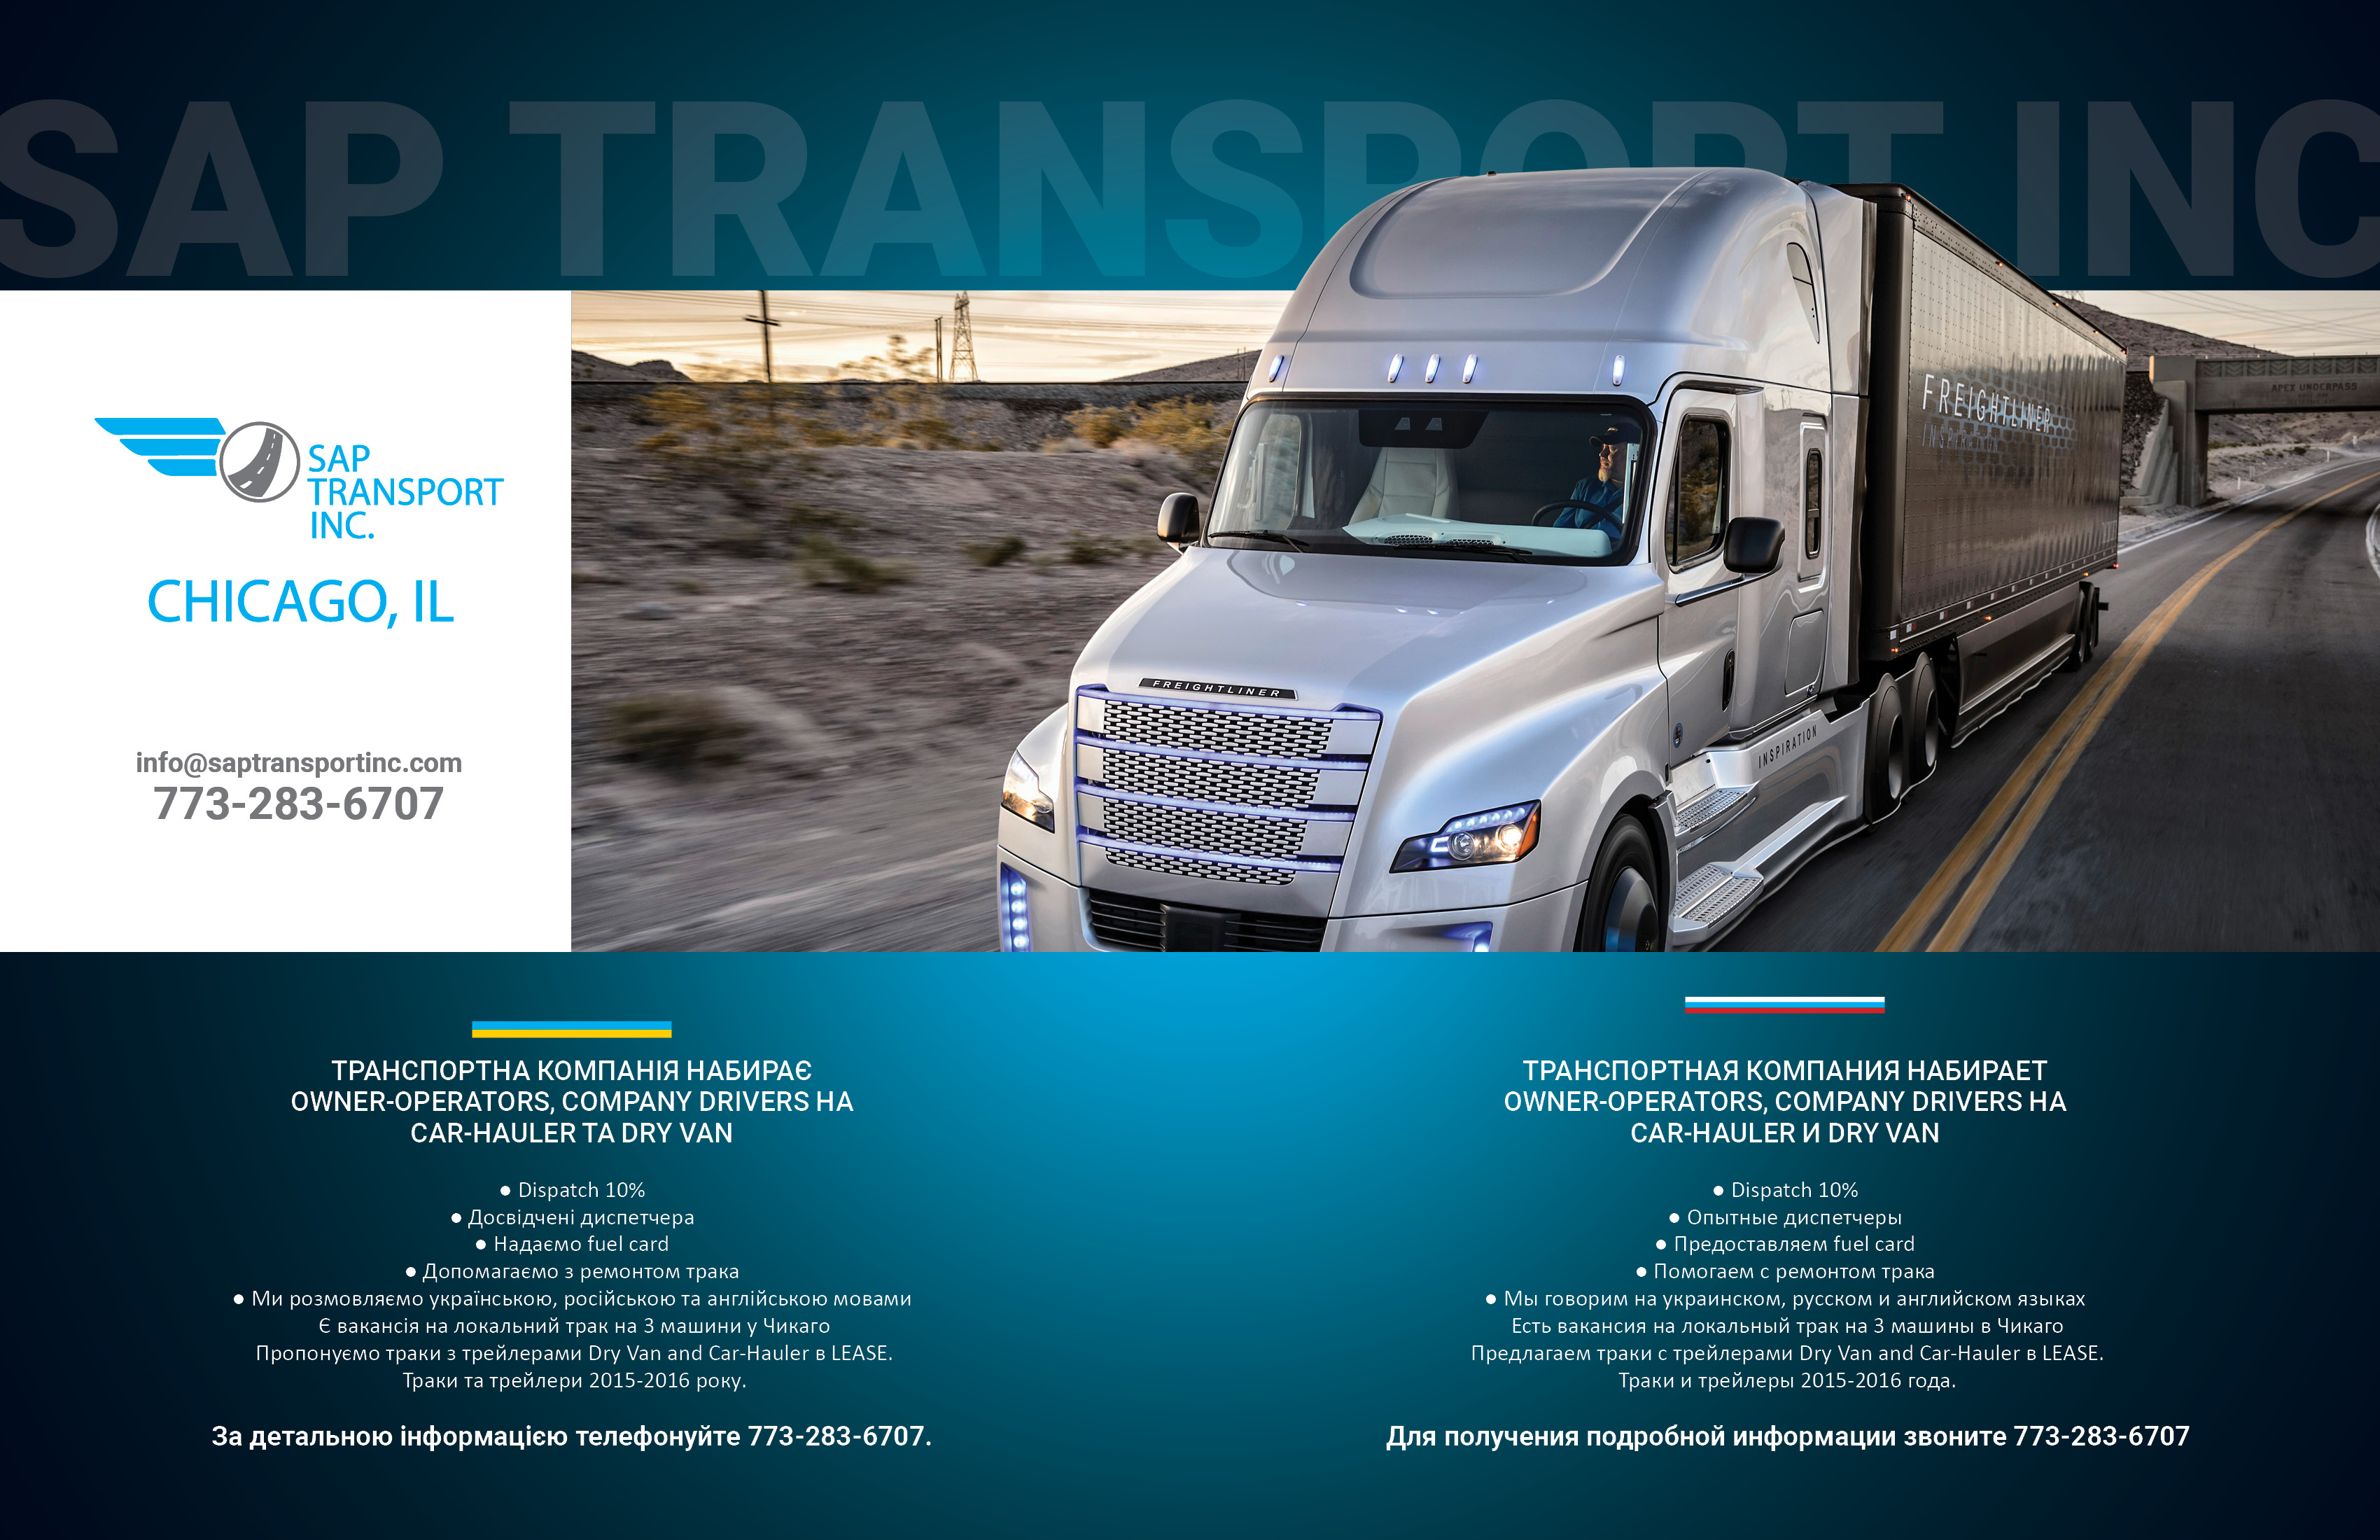 SAP Transport Inc НАБИРАЕТ OWNER-OPERATORS, COMPANY DRIVERS НА CAR ...